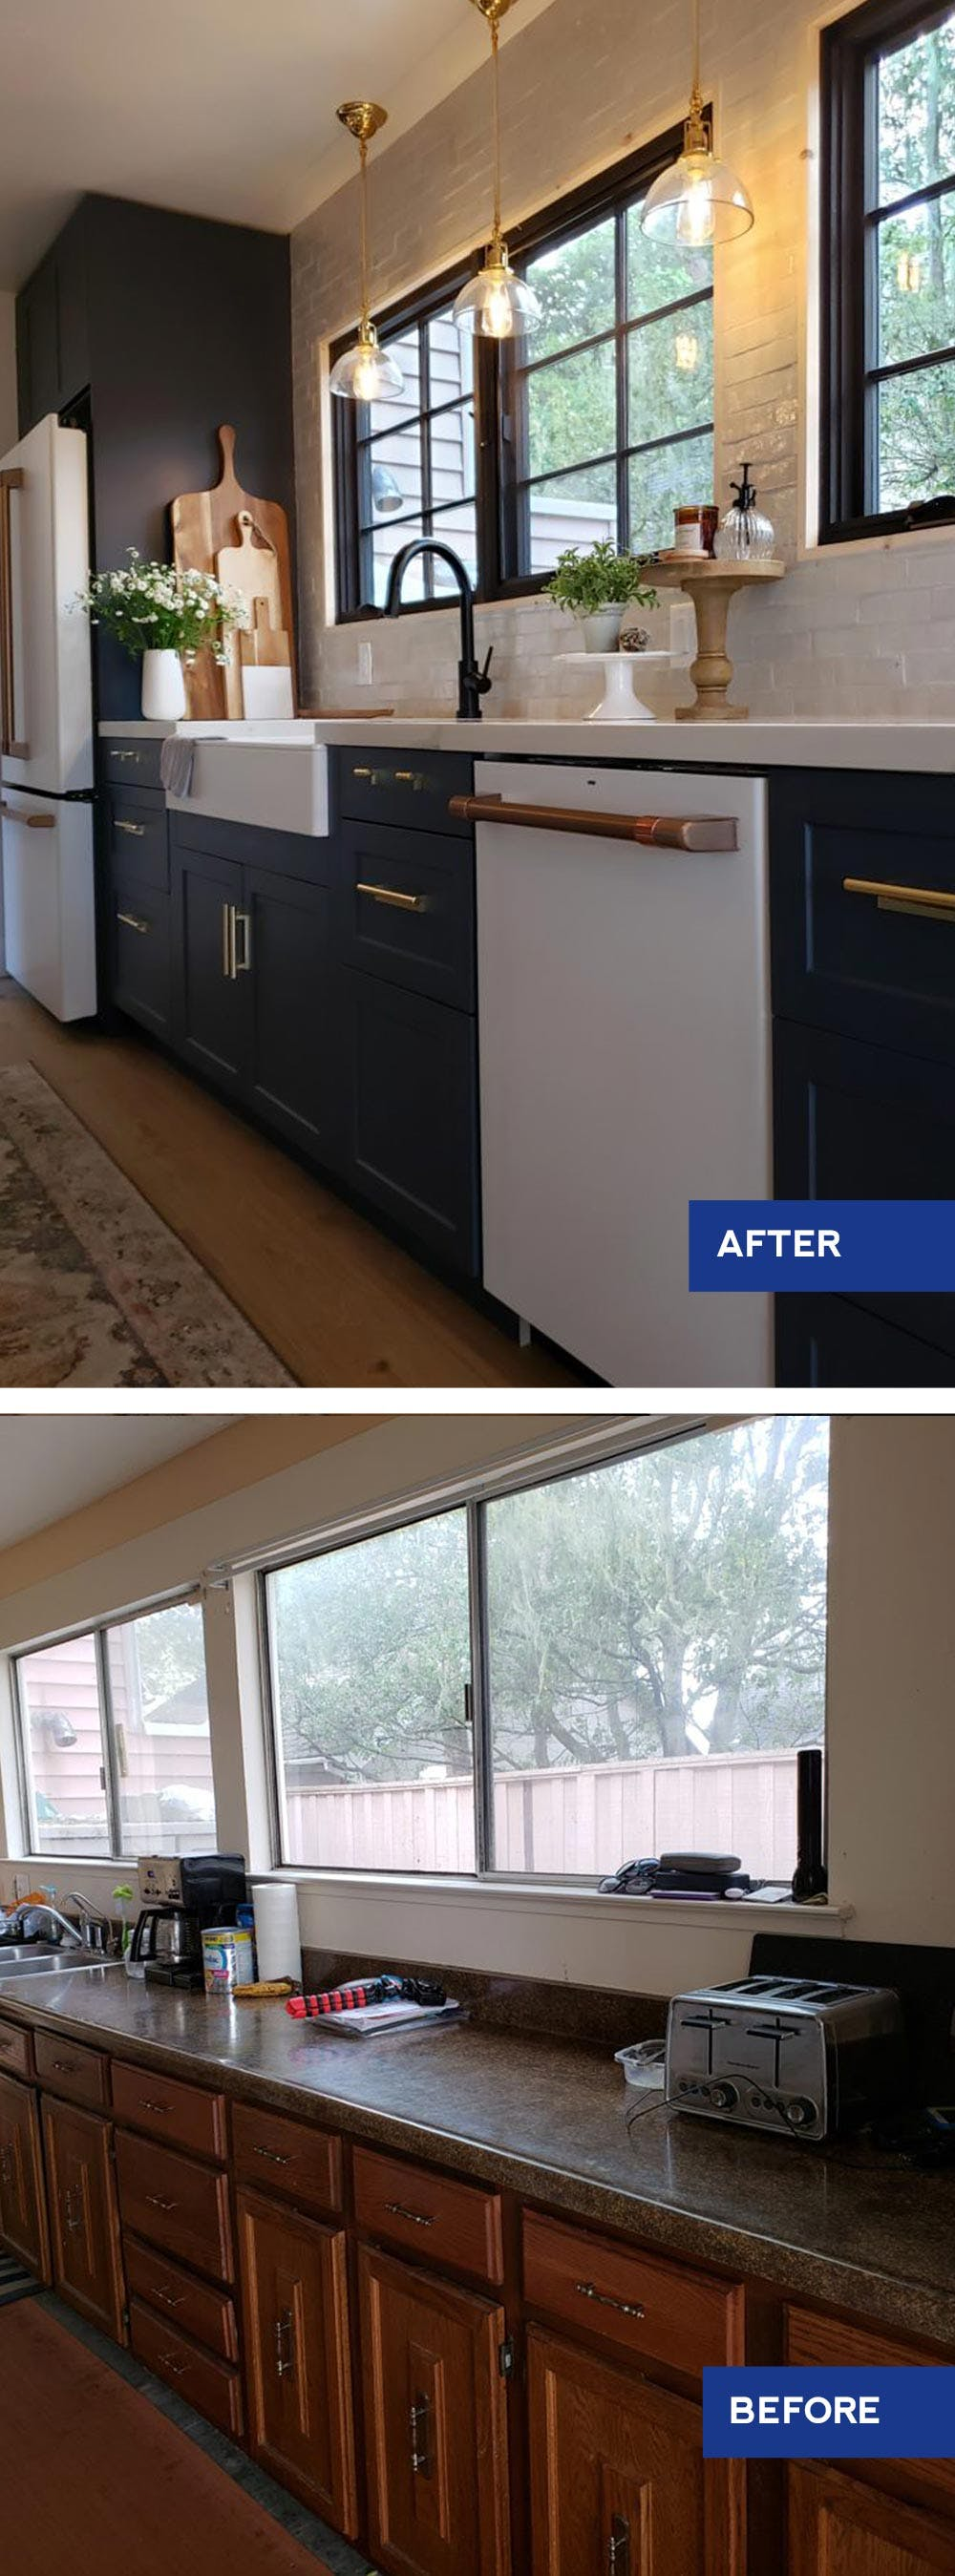 before and after kitchen renovation with navy blue cabinets and gold hardware